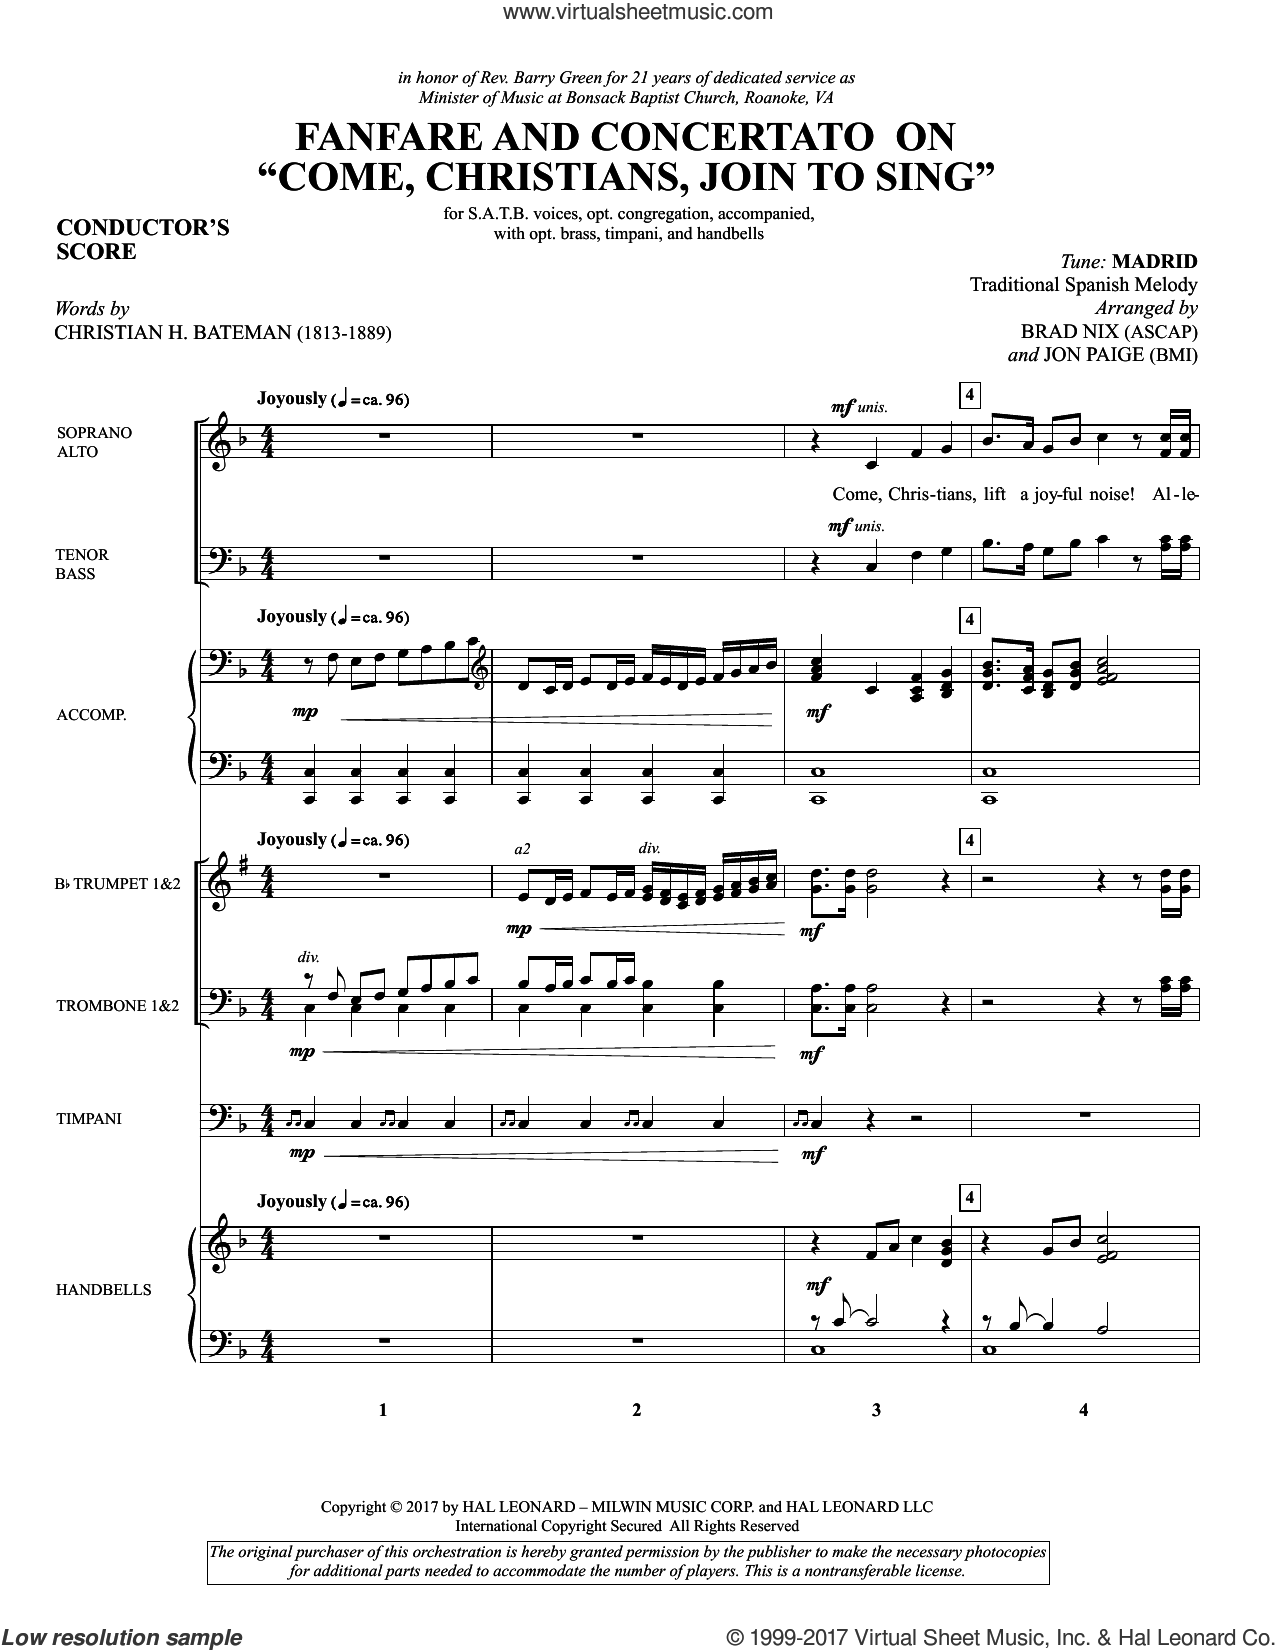 Fanfare and Concertato on 'Come, Christians, Join to Sing' (COMPLETE) sheet music for orchestra/band by Brad Nix, Christian Henry Bateman, Jon Paige and Miscellaneous, intermediate